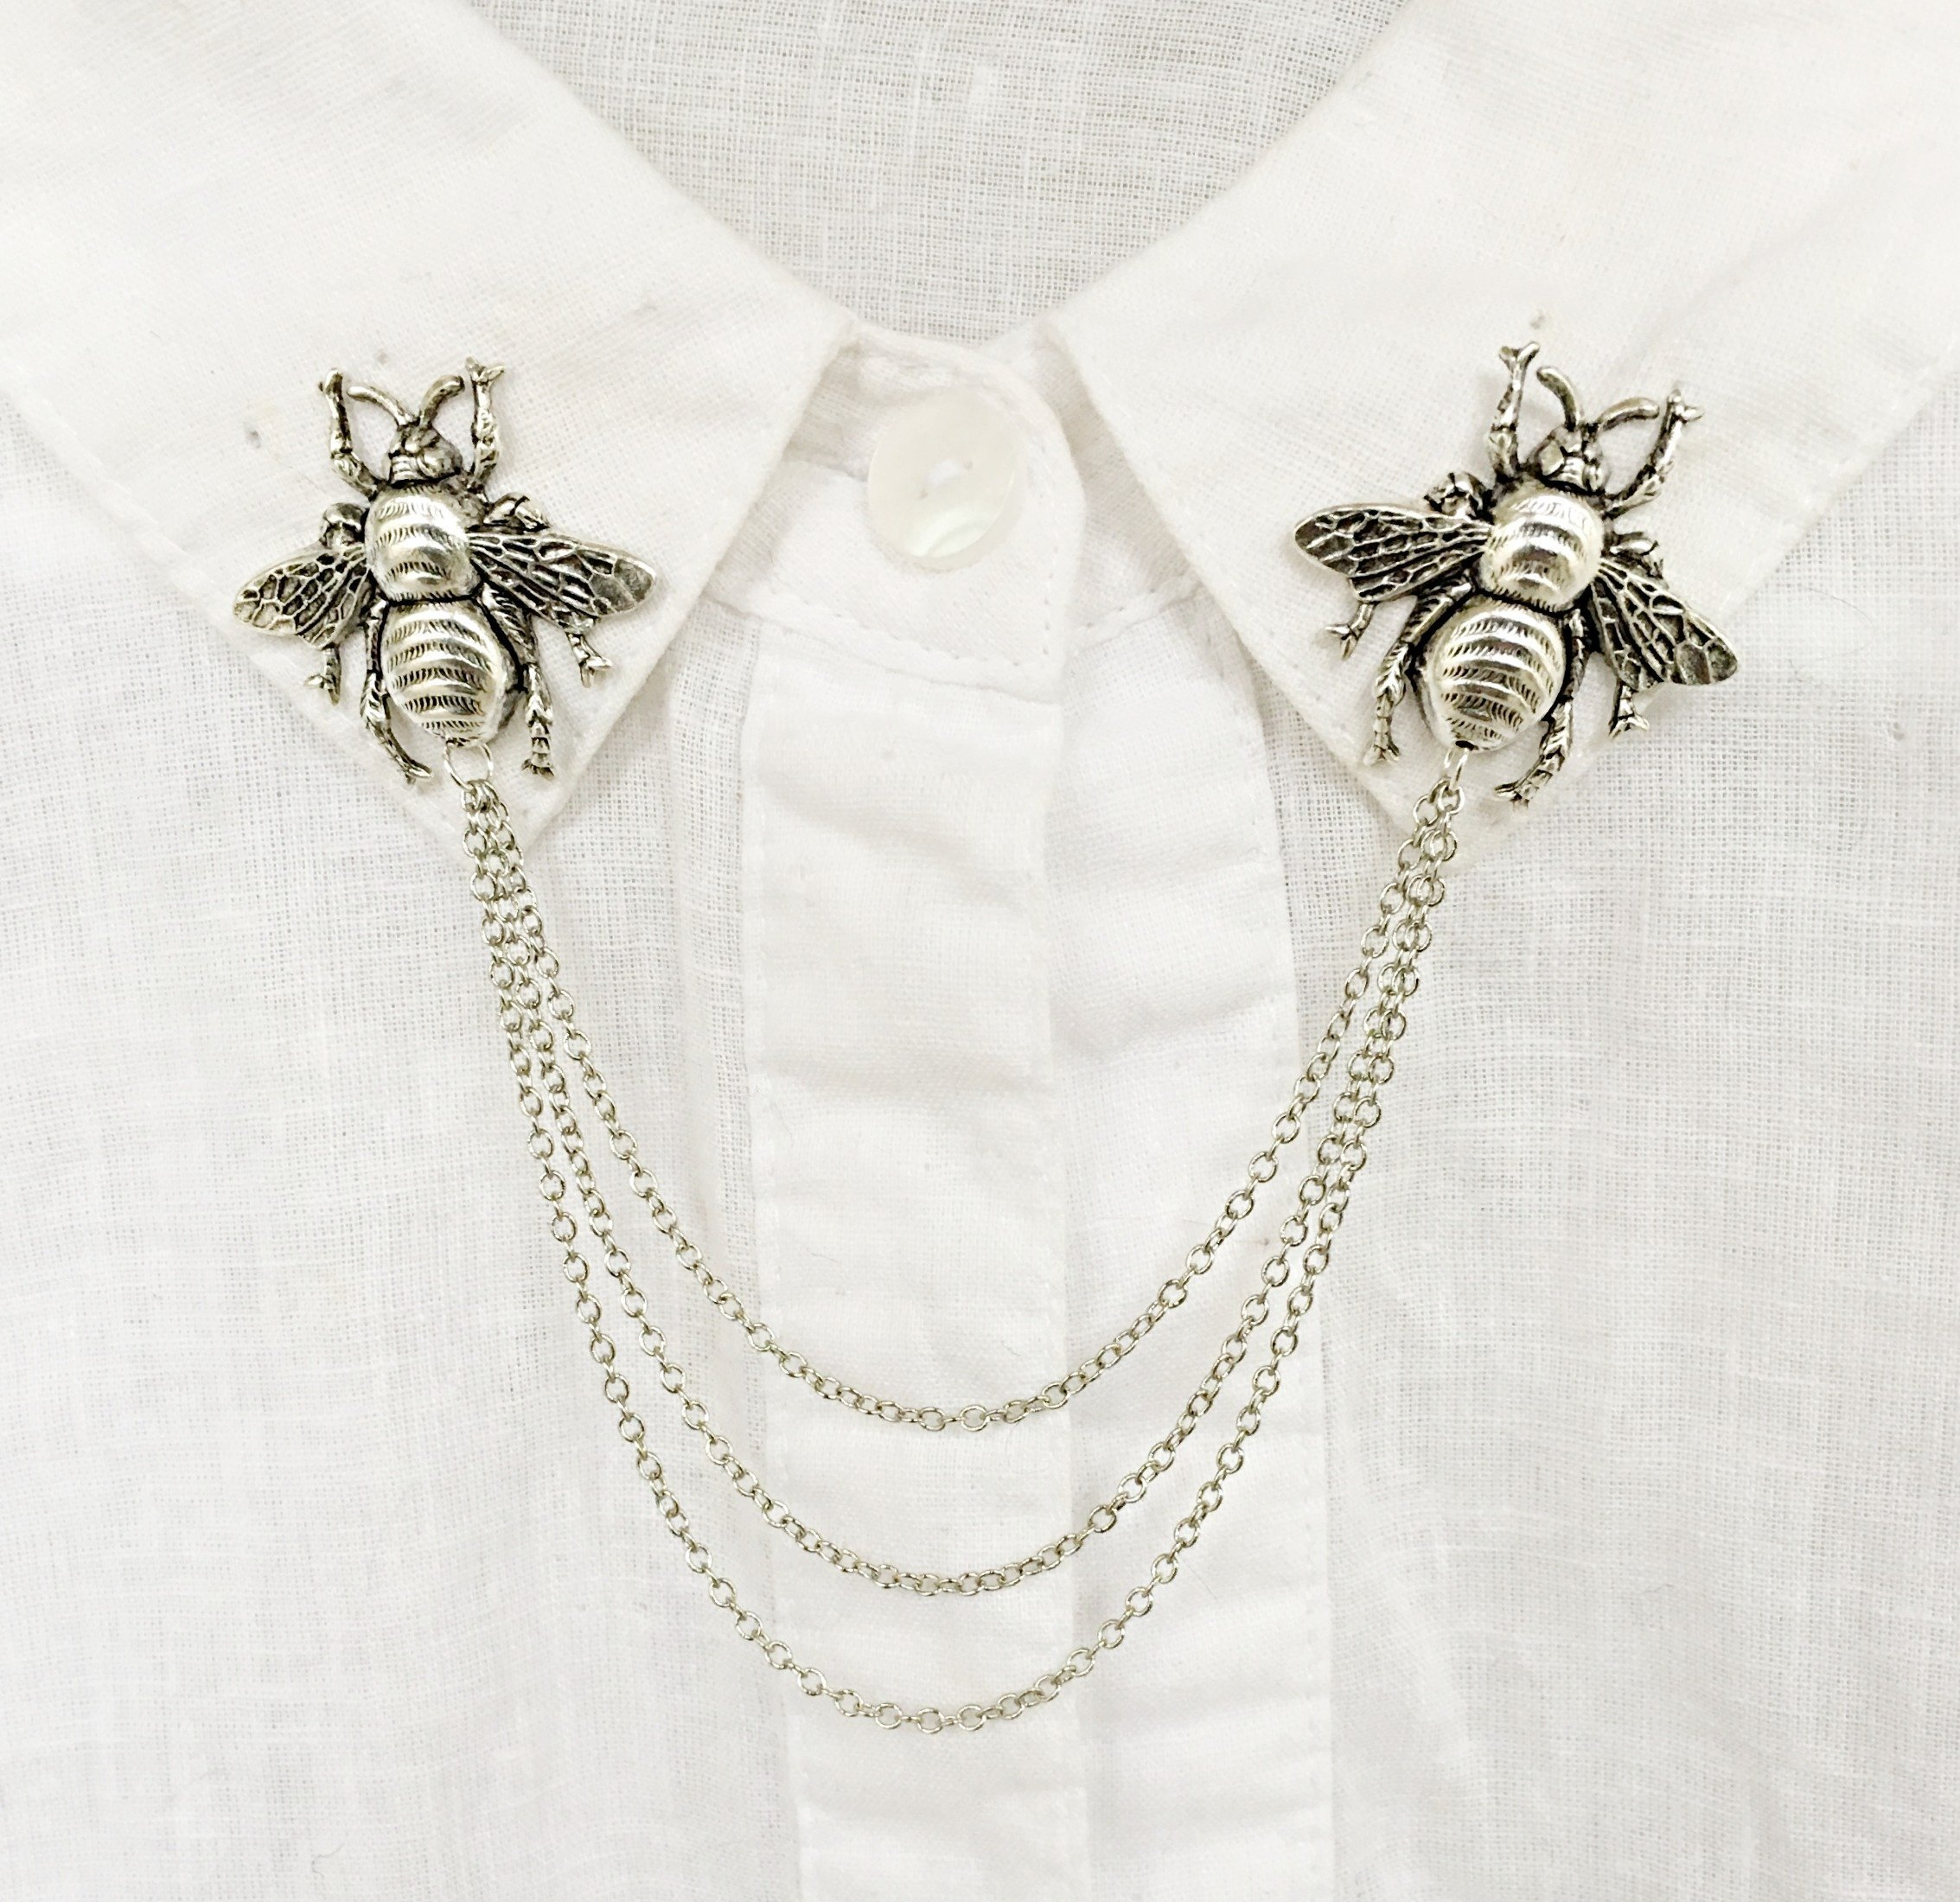 silver bee collar pins or sweater pins for cardigan with 3 silver chains connecting each brooch